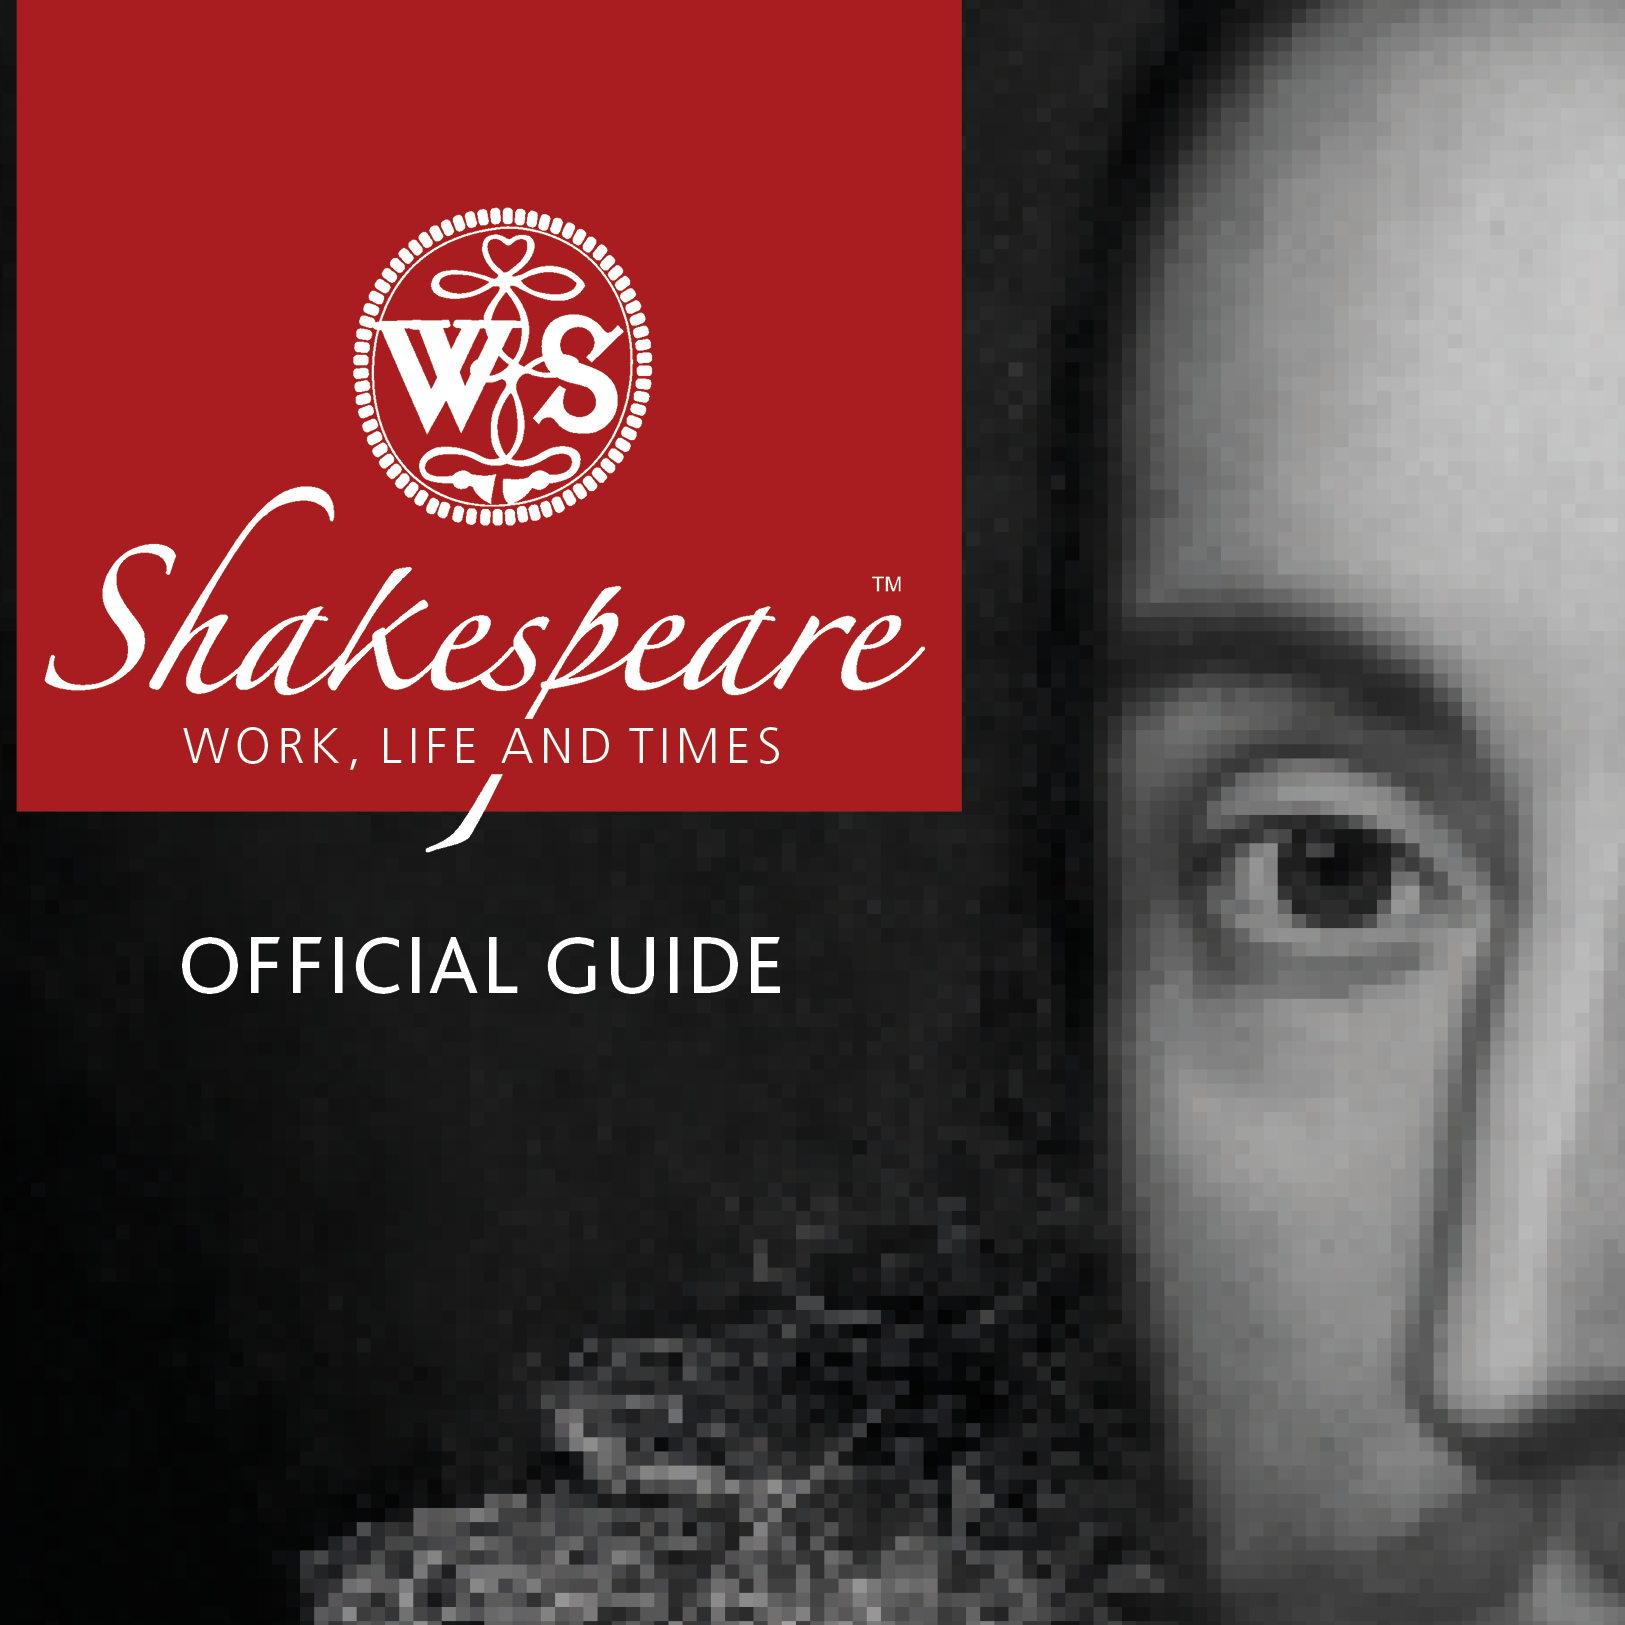 Shakespeare Work,Life and Times